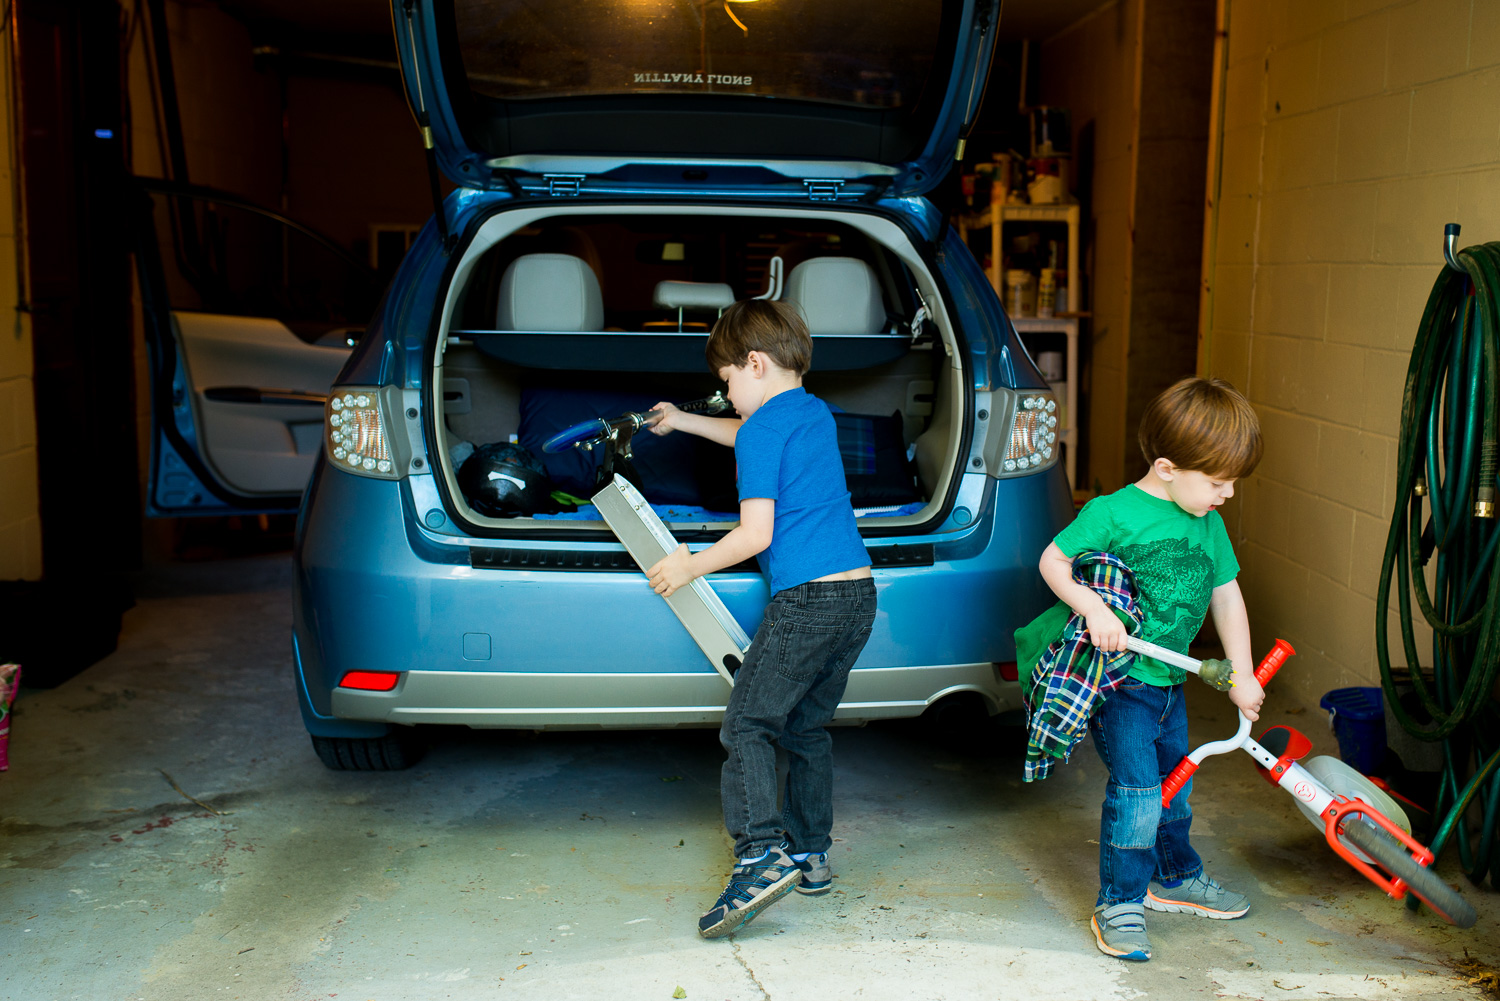 greensburg-family-photographer-packing-bikes-in-car